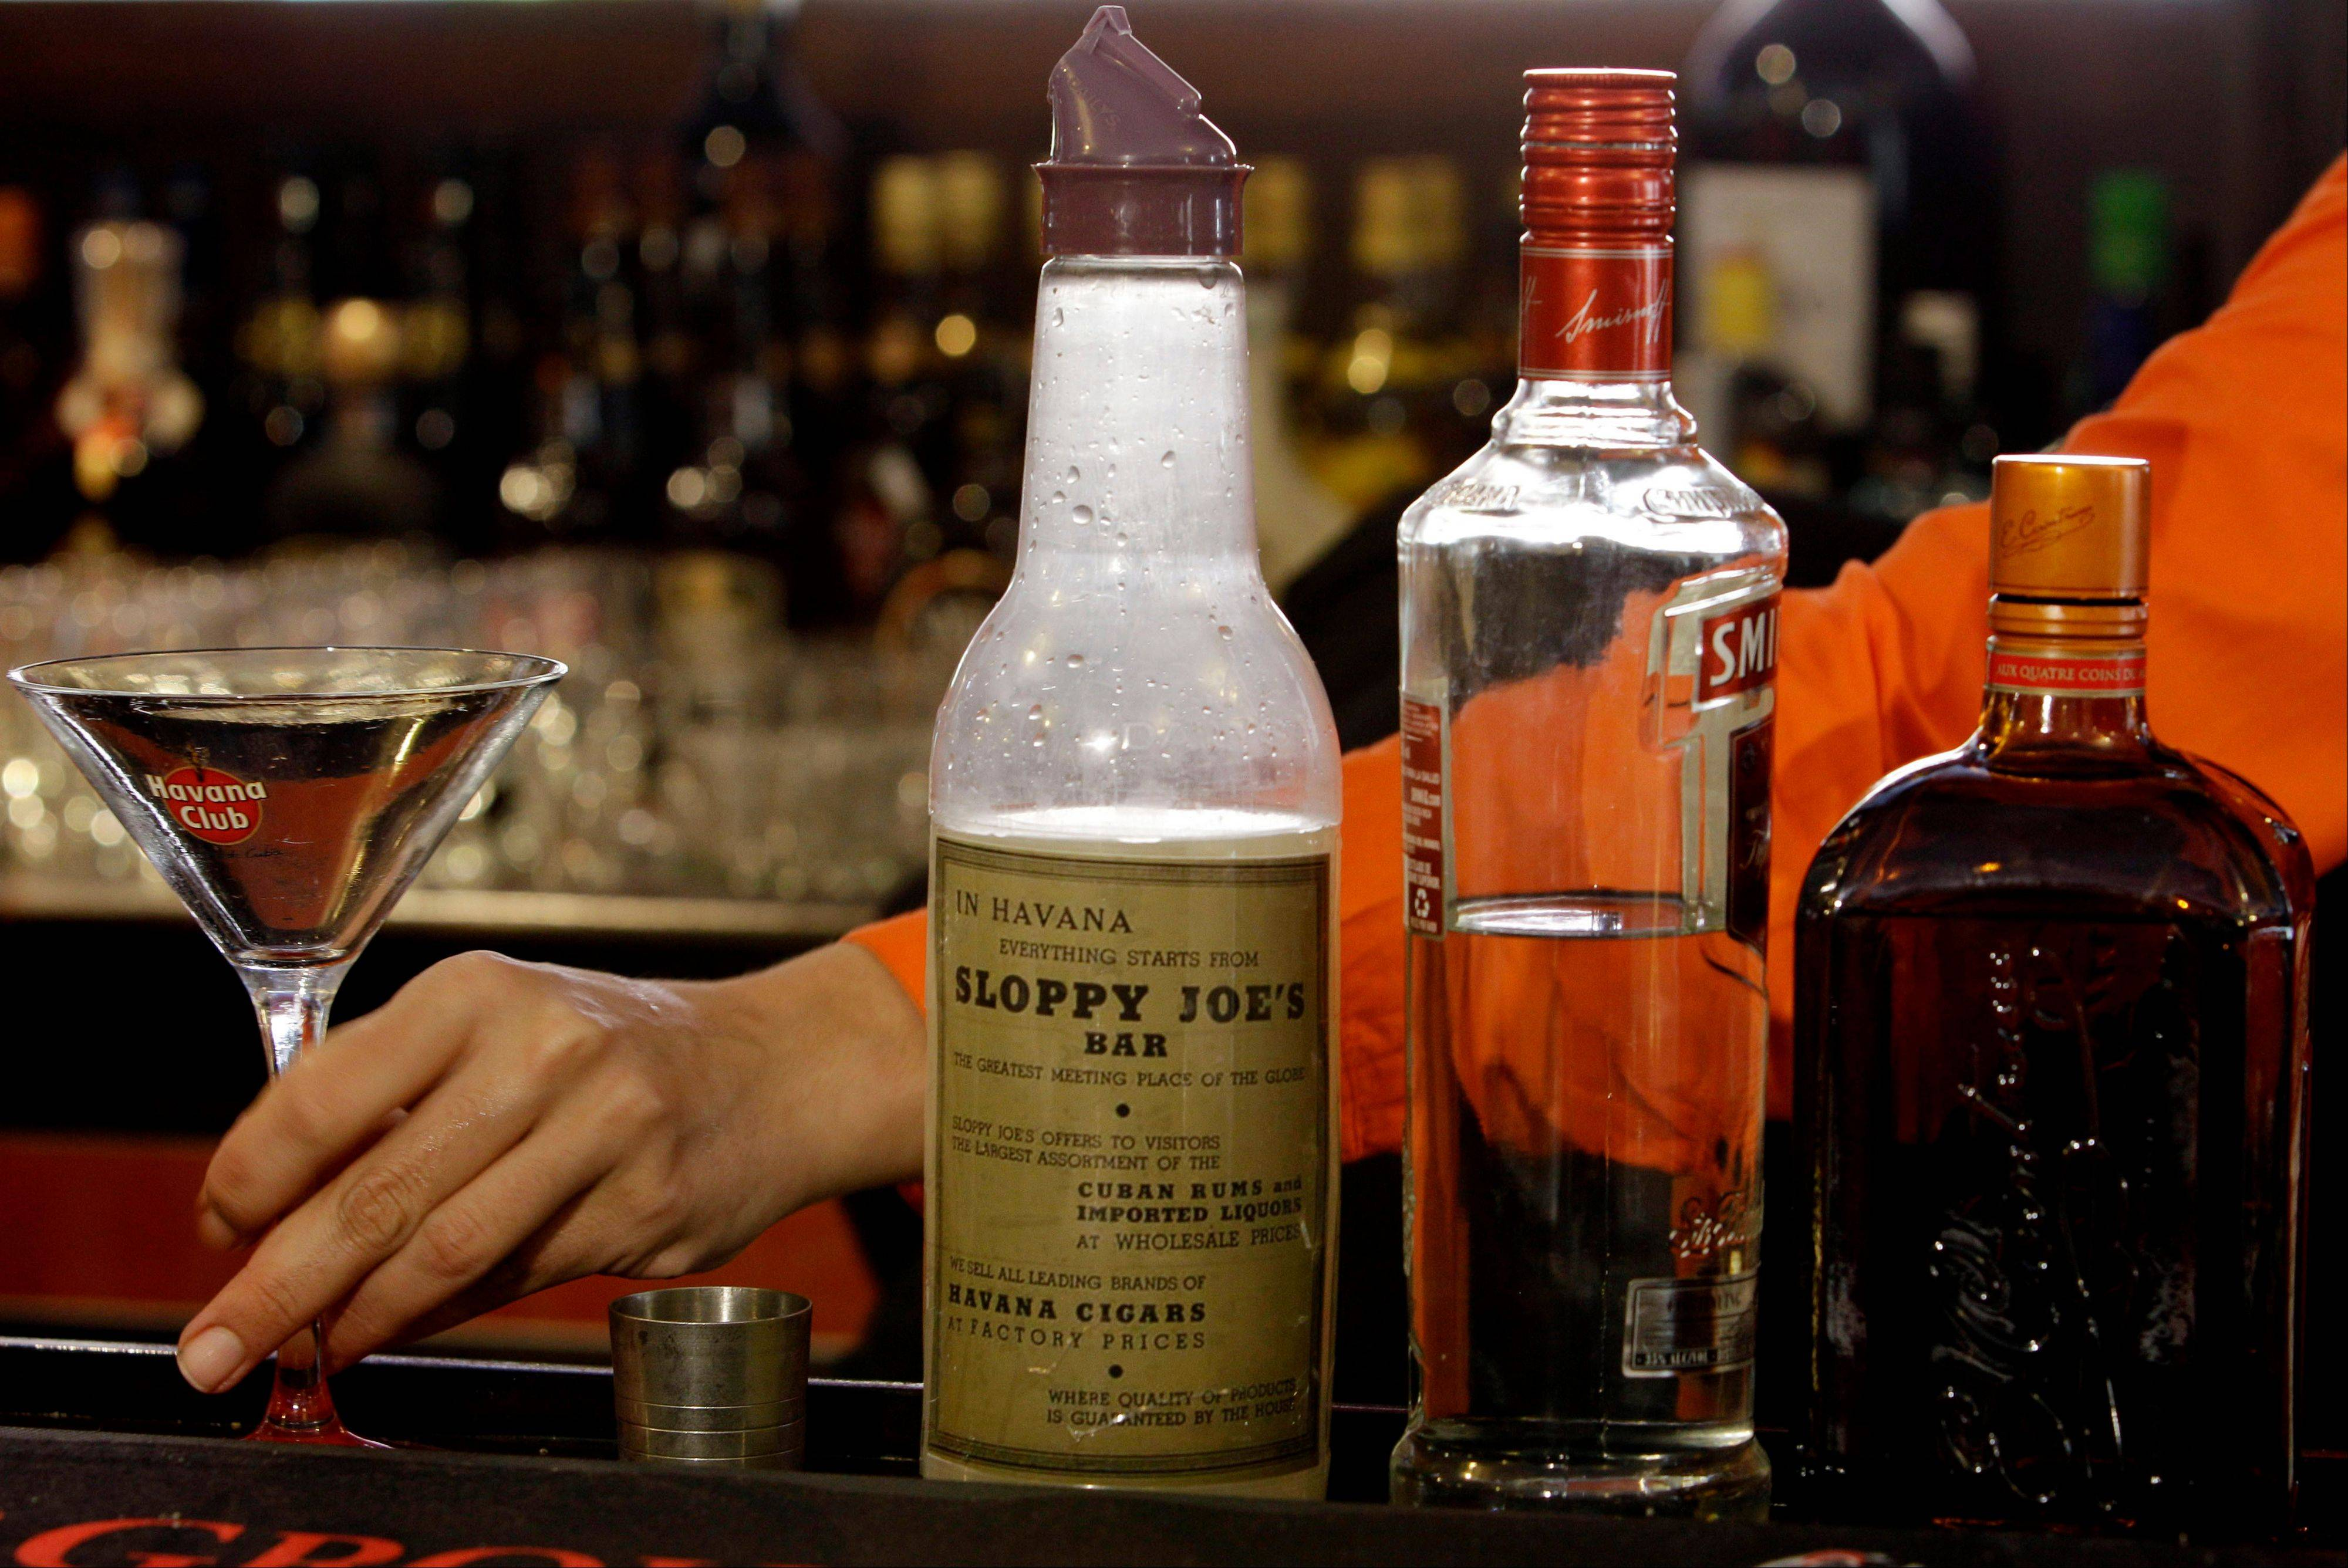 A bartender prepares a drink Friday at Sloppy Joe�s Bar before its reopening in Havana, Cuba.